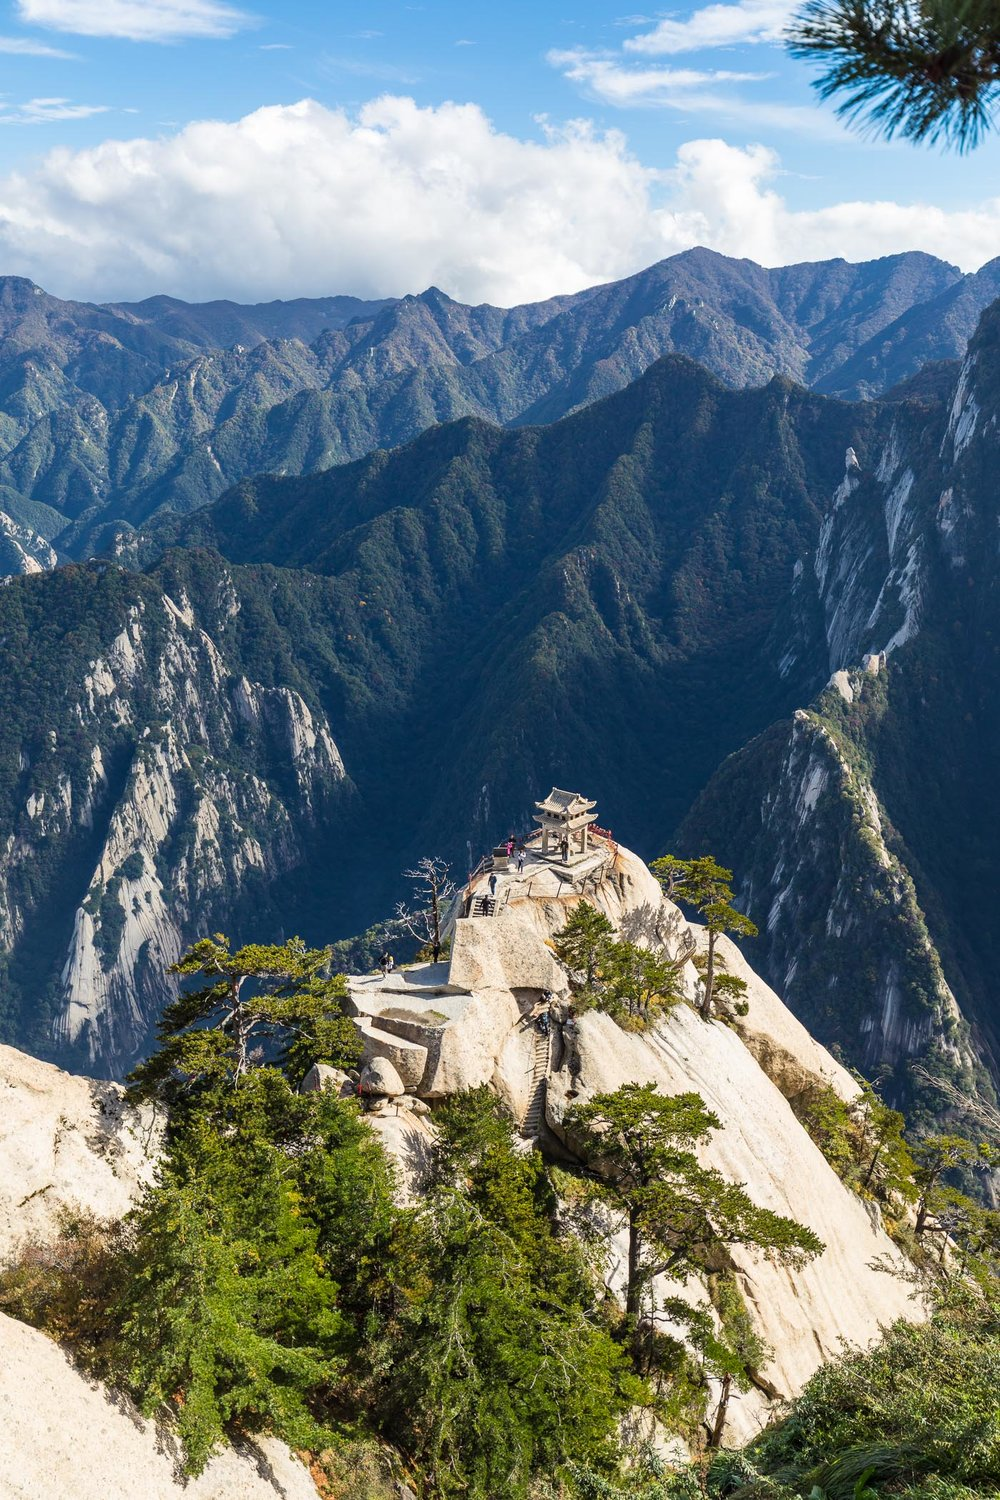 Trekking Hua Shan and the Most Dangerous Trail in the World | Society of Everywhere